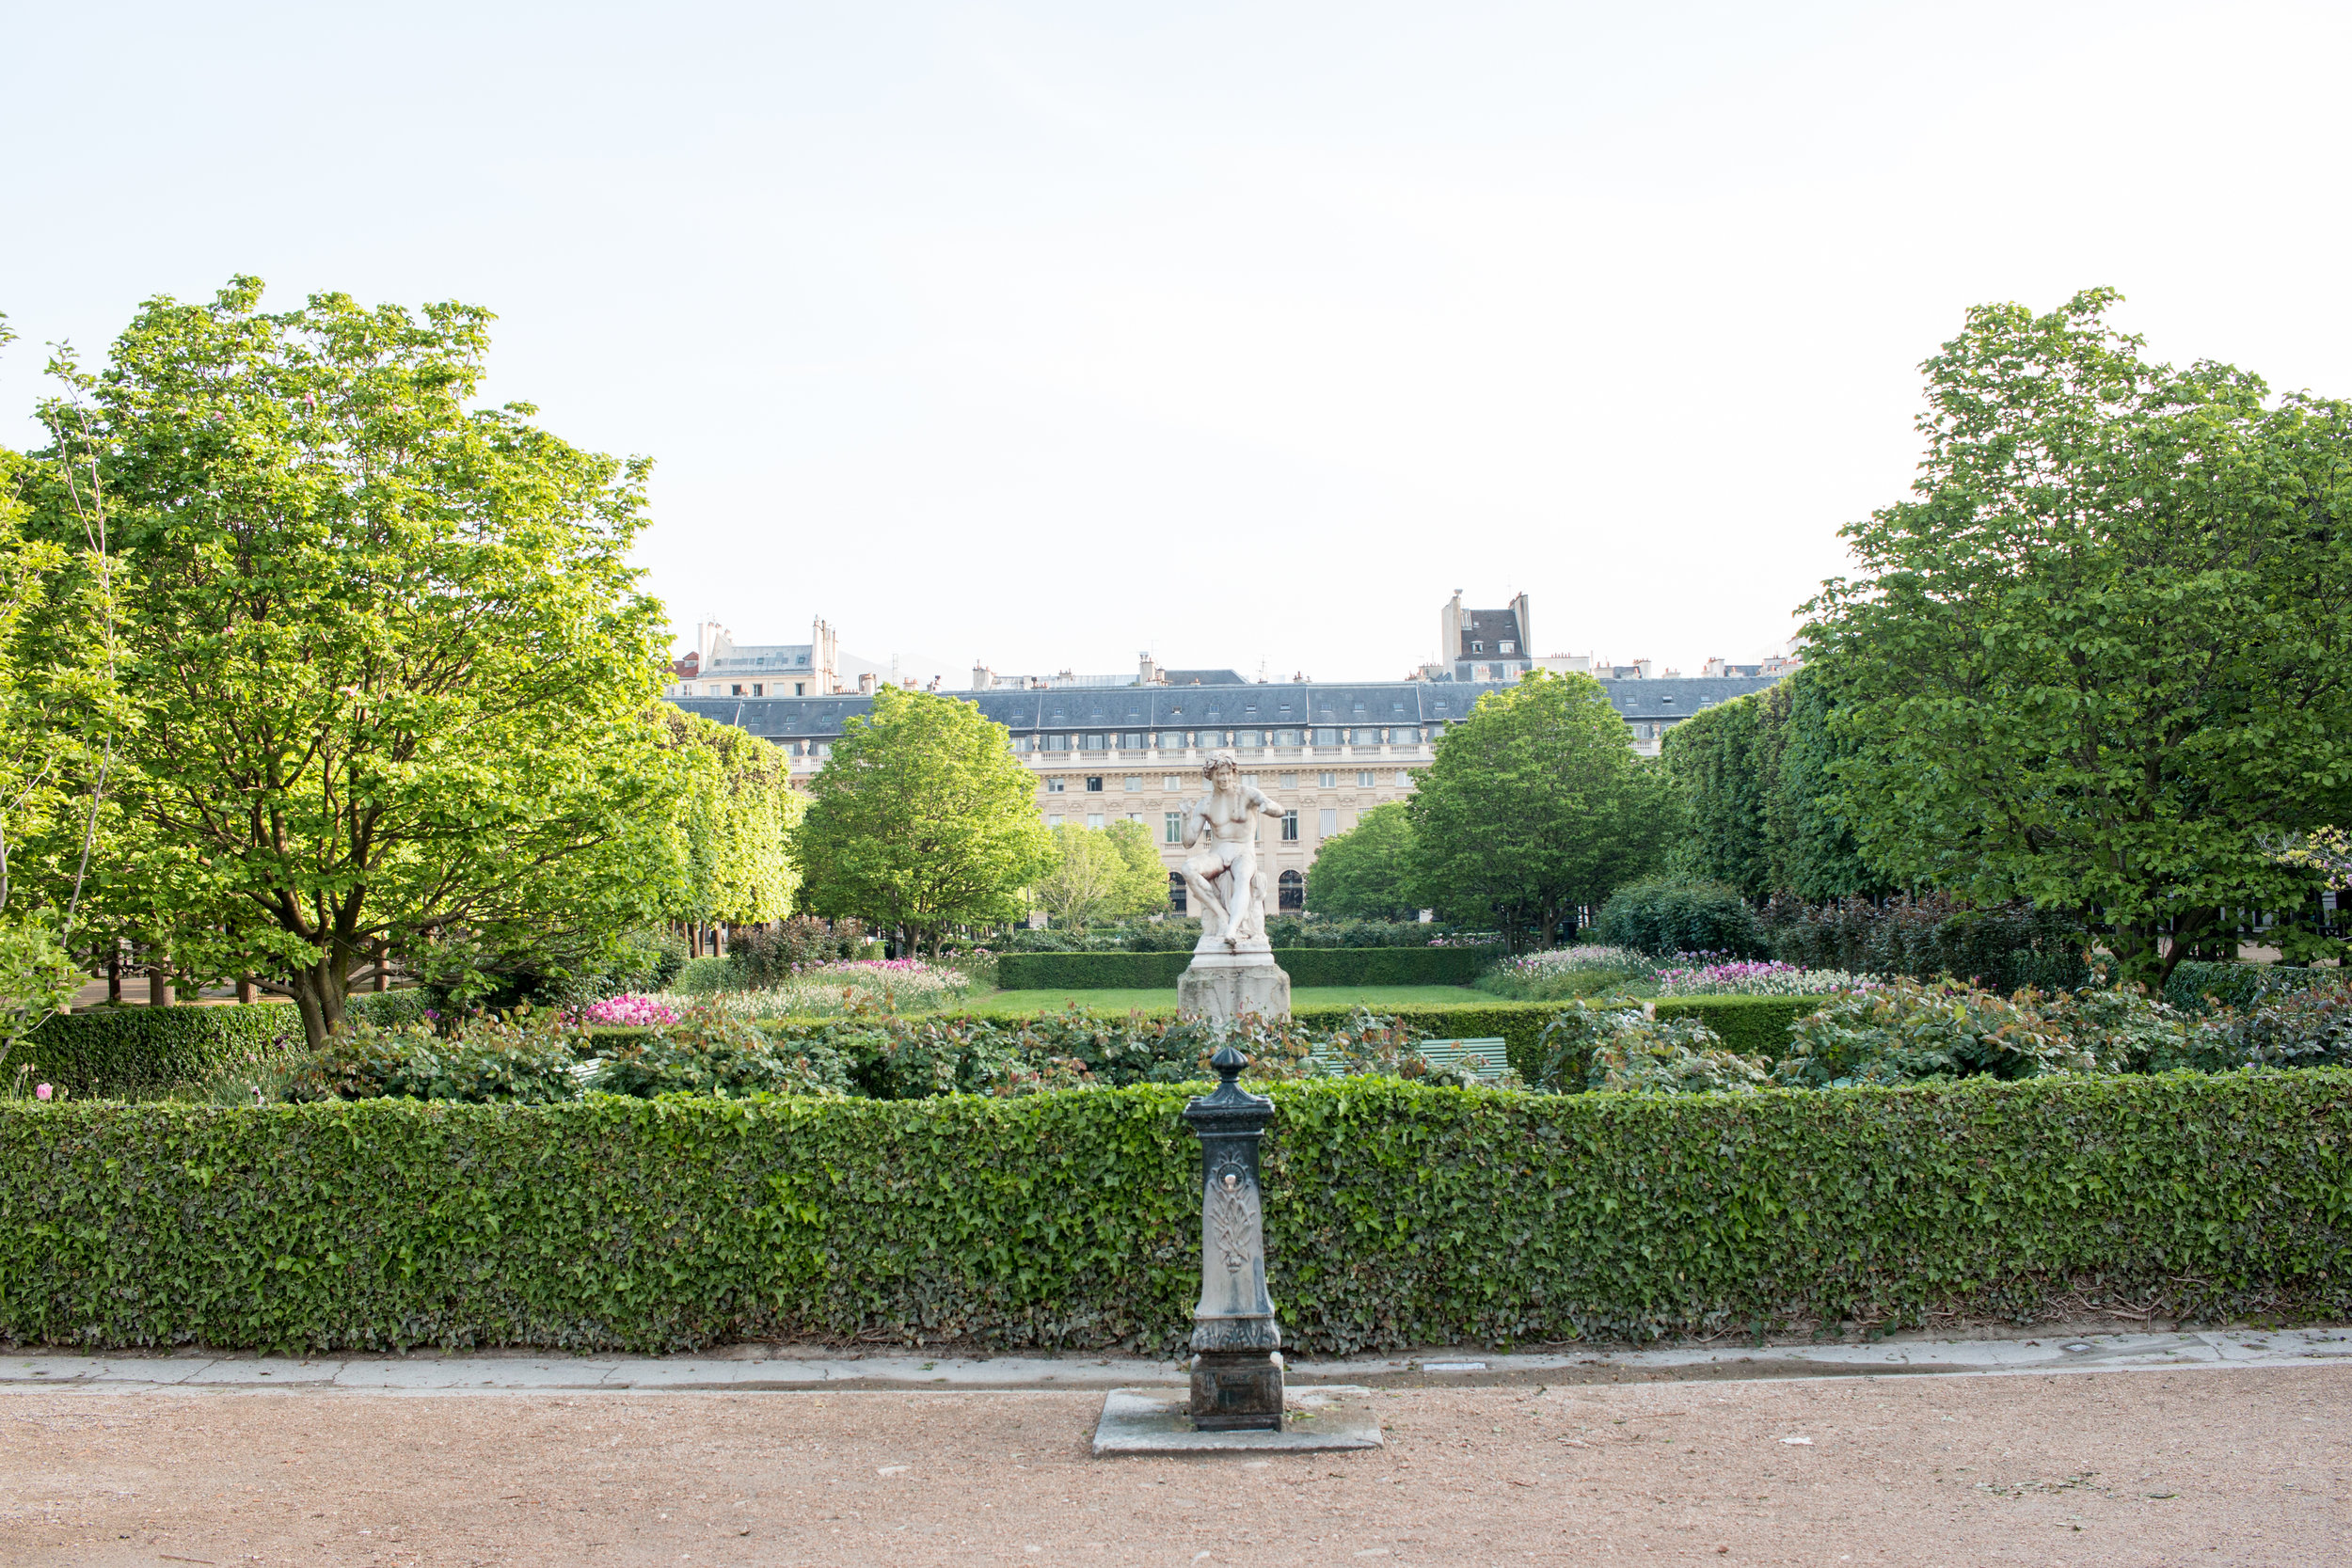 palais royal paris, france rebecca plotnick